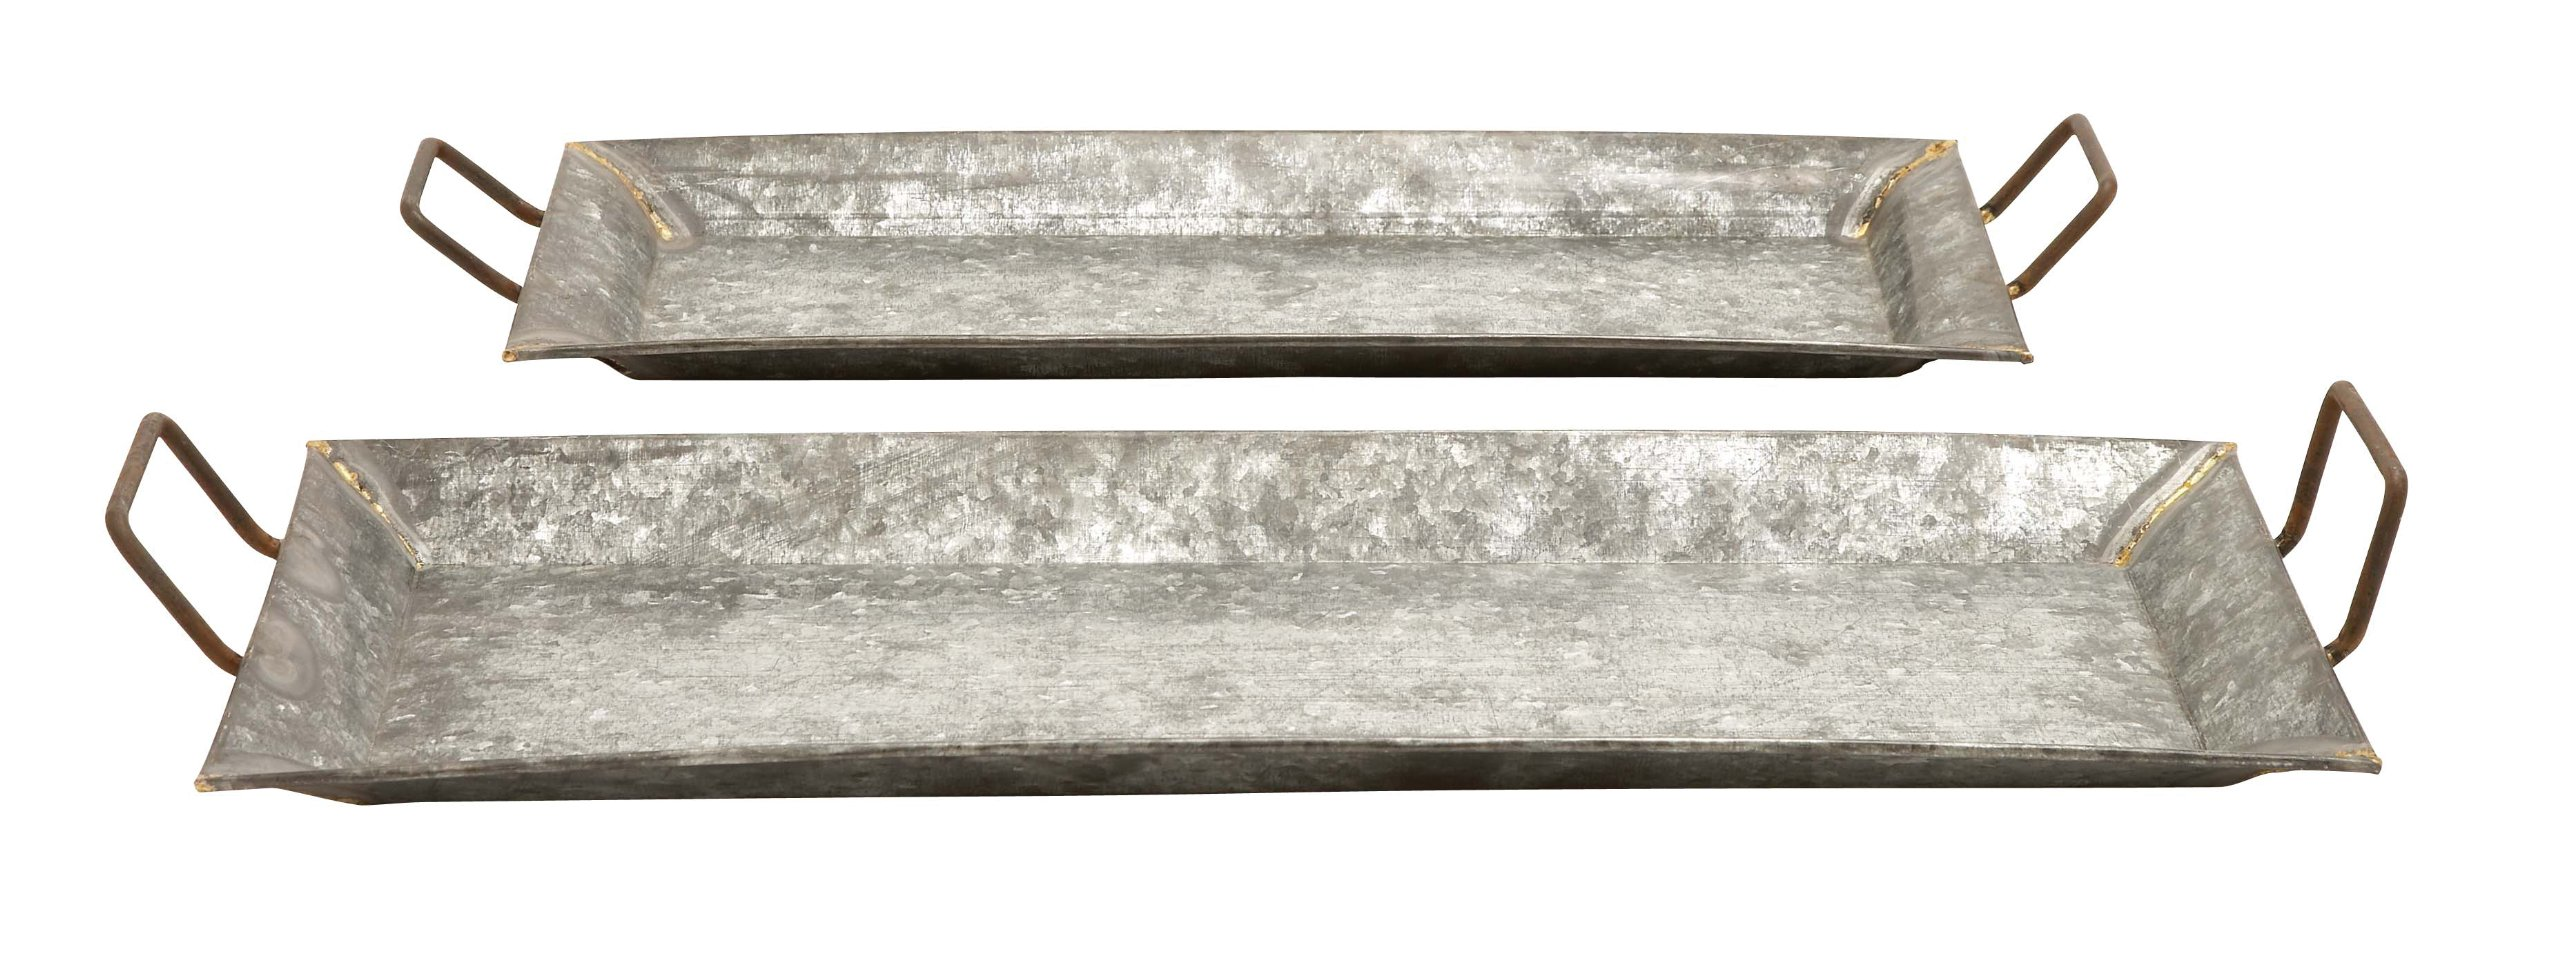 Deco 79 Farmhouse Rectangular Serving Trays with Handles, 29'' and 25''L, Galvanized Gray Finish, Set of 2